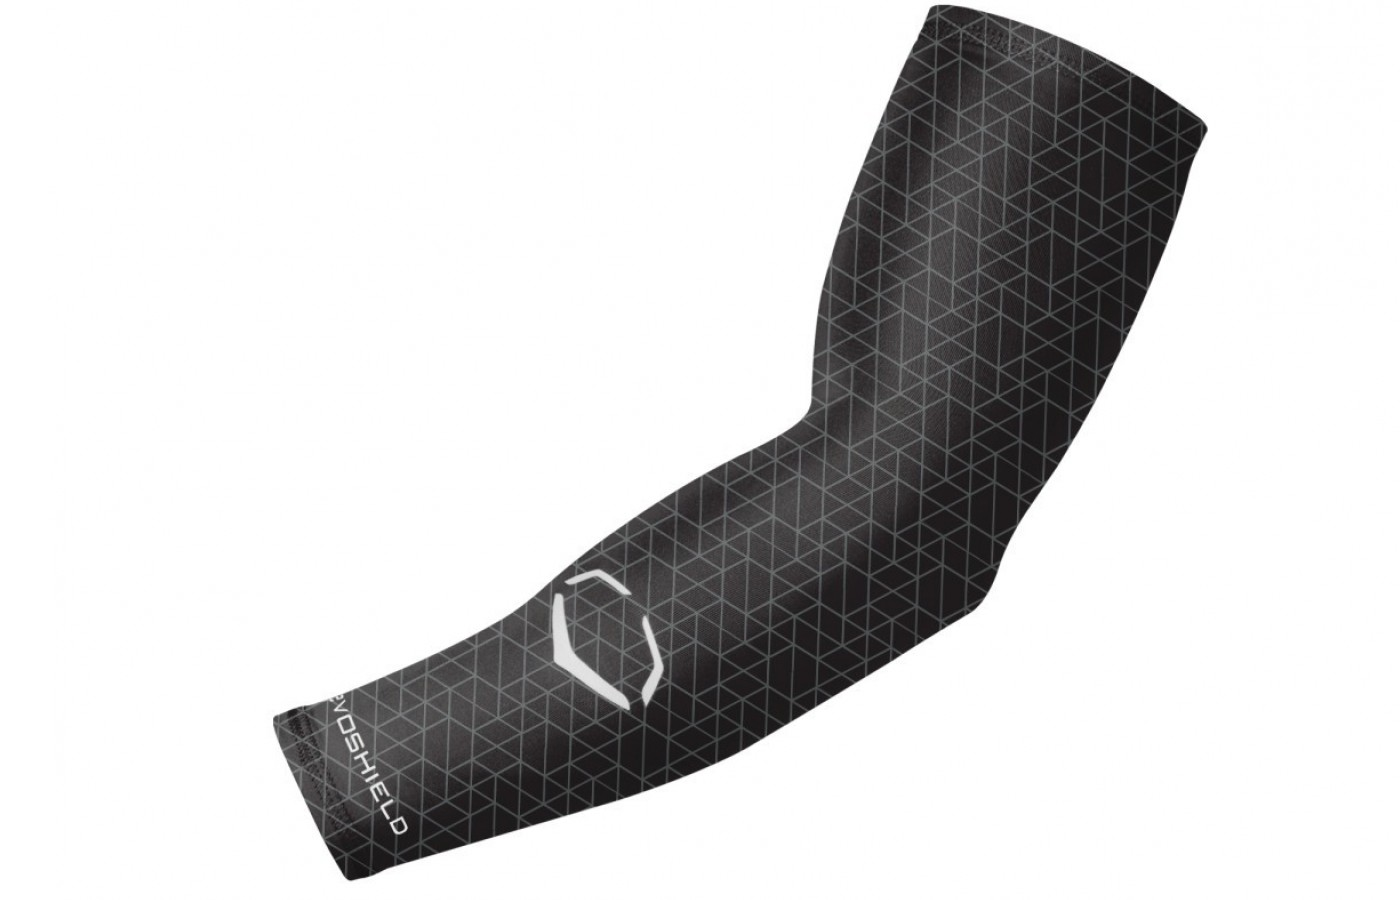 A style of the EvoShield Compression Arm Sleeve.